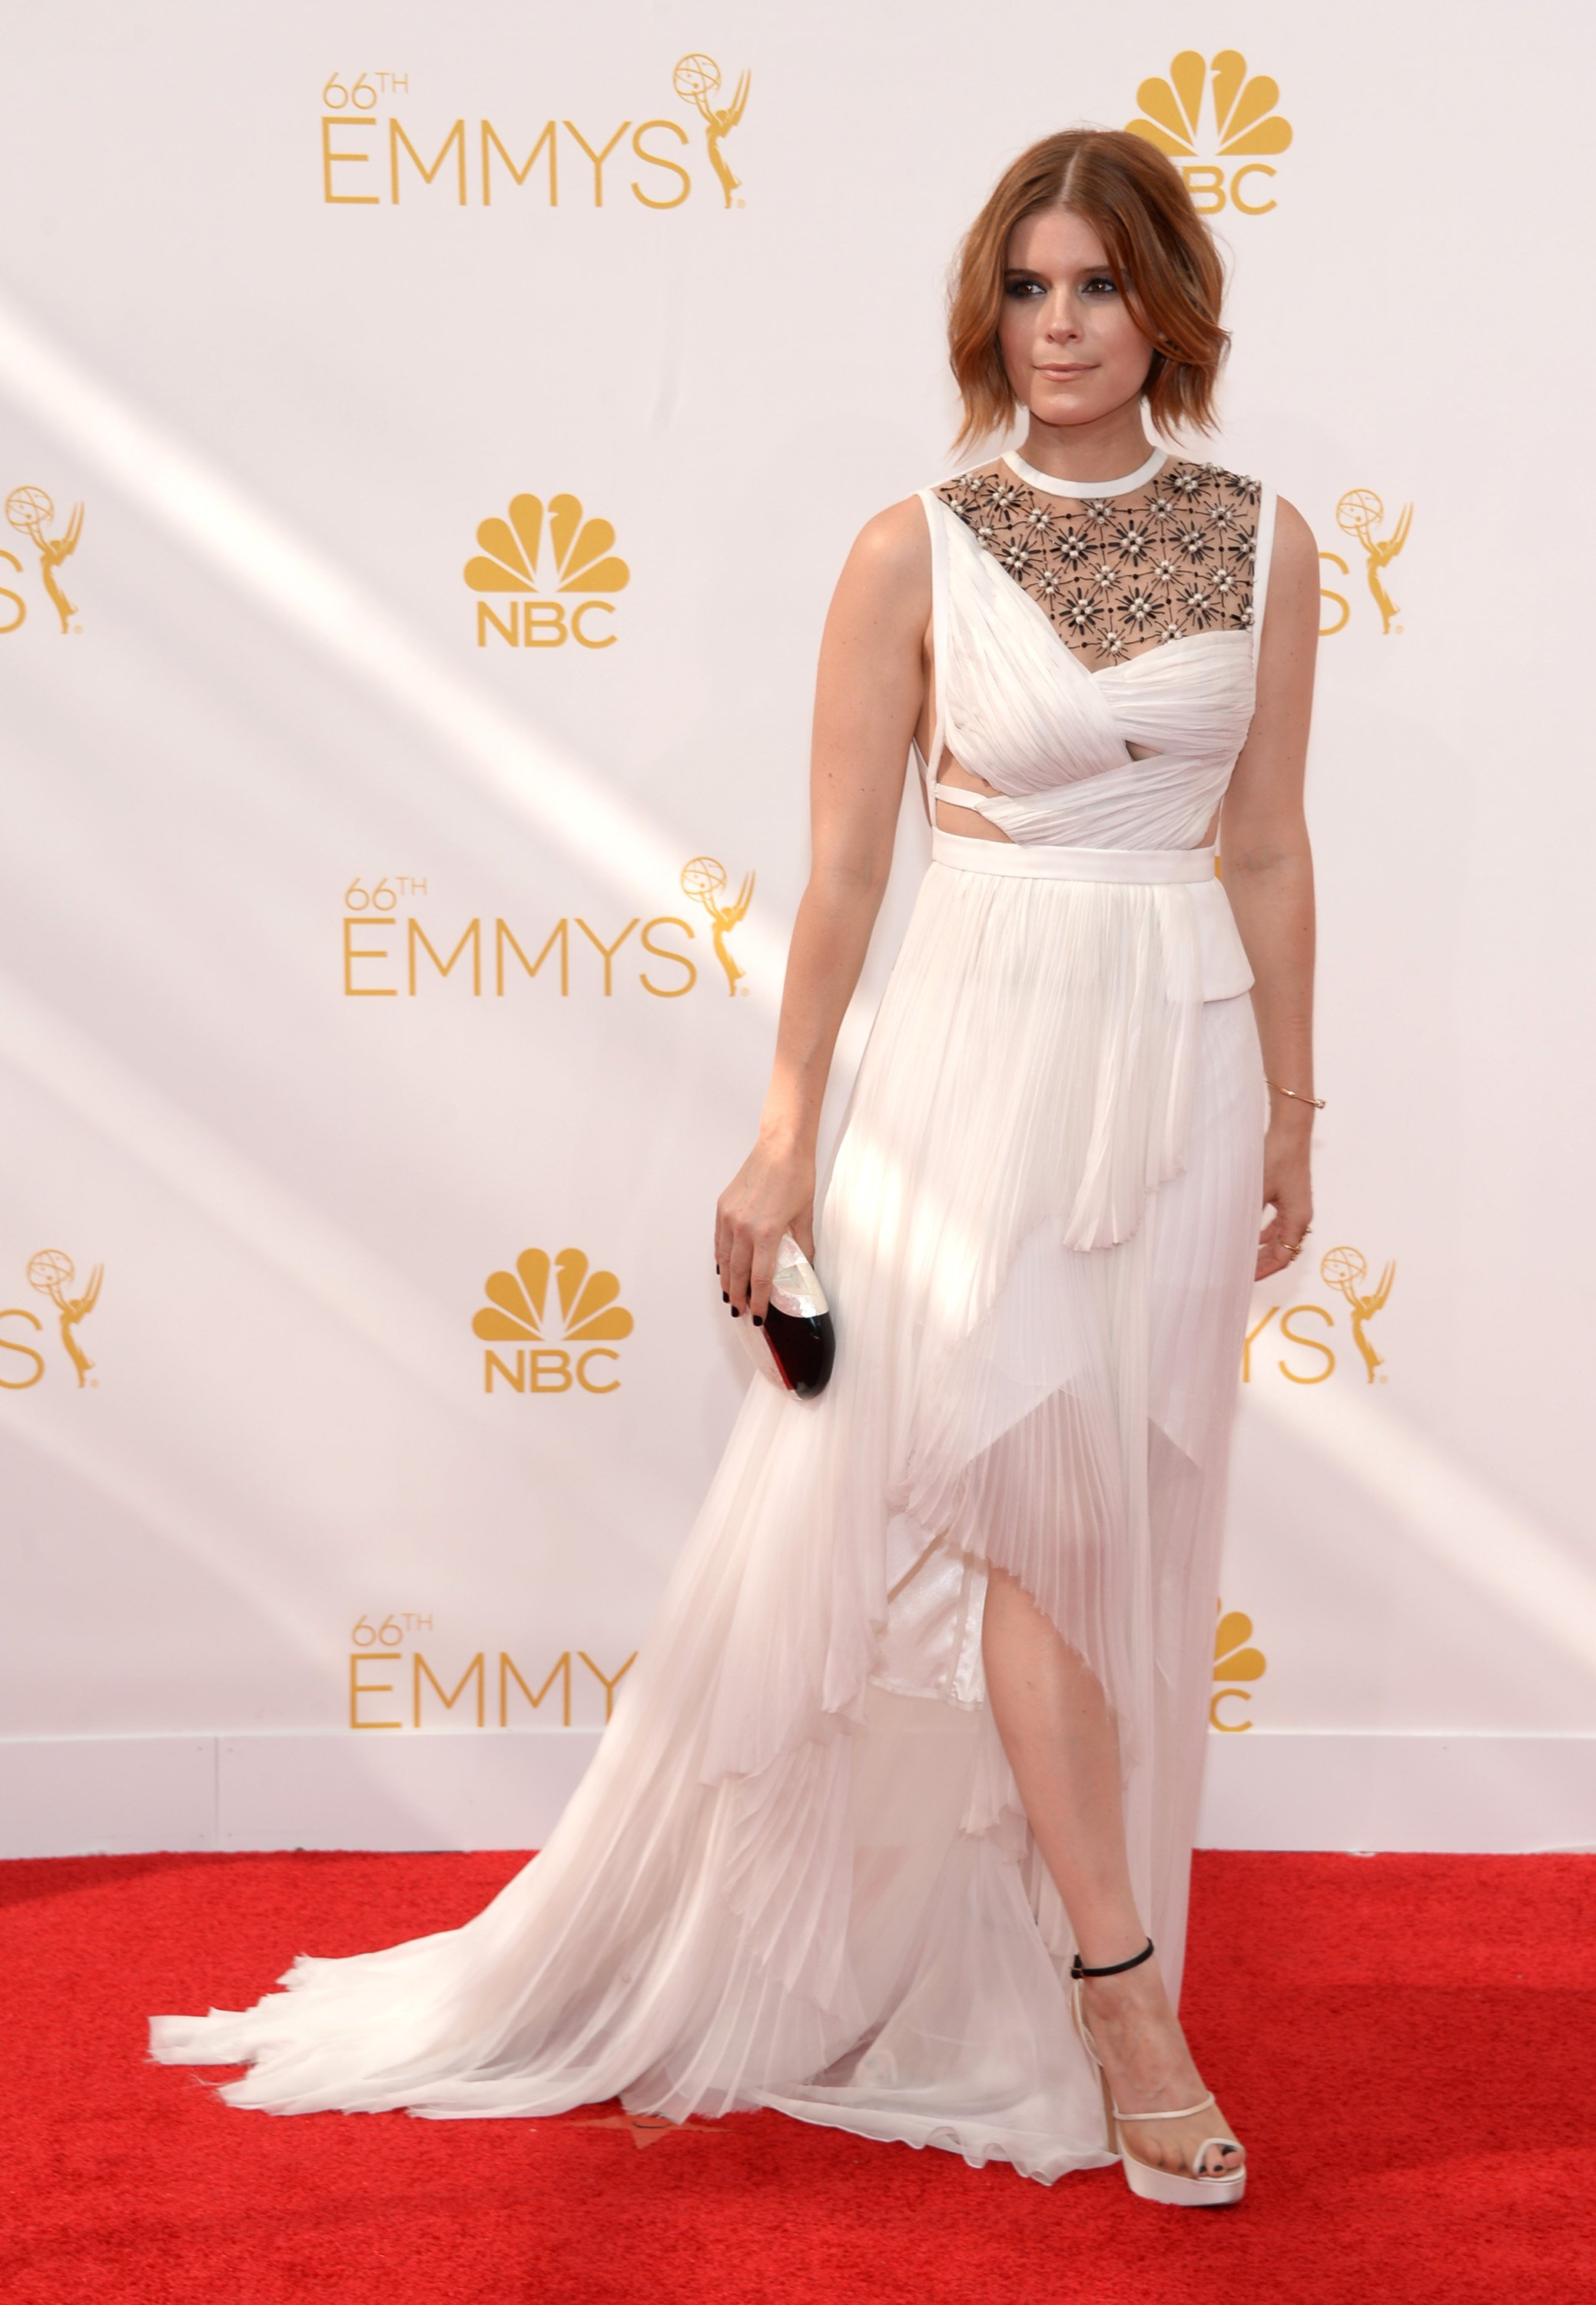 Kate Mara arrives at the 66th Primetime Emmy Awards at the Nokia Theatre L.A. Live on Monday, Aug. 25, 2014, in Los Angeles.